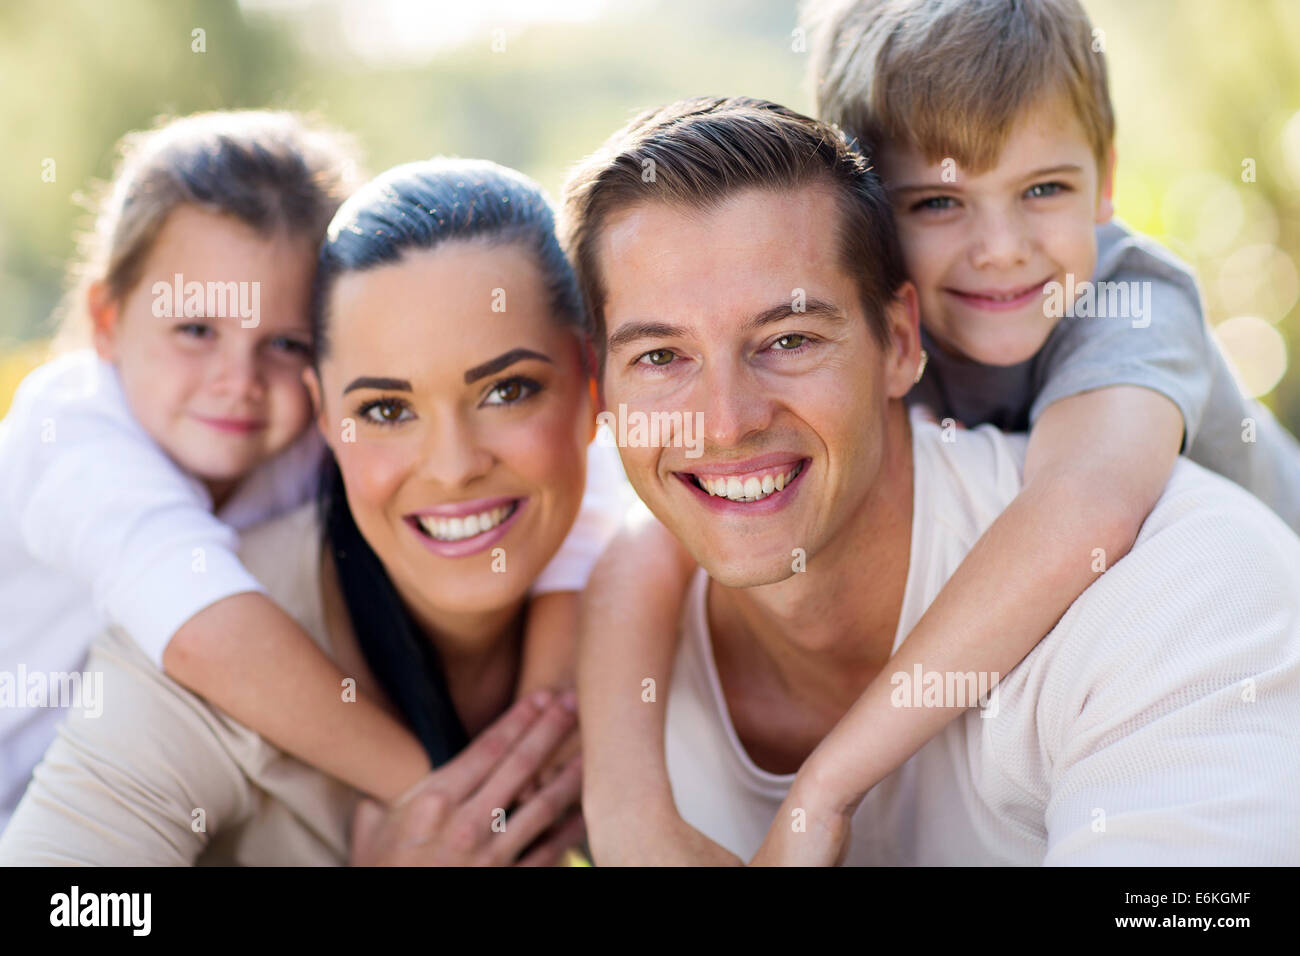 loving young family having fun together outdoors - Stock Image